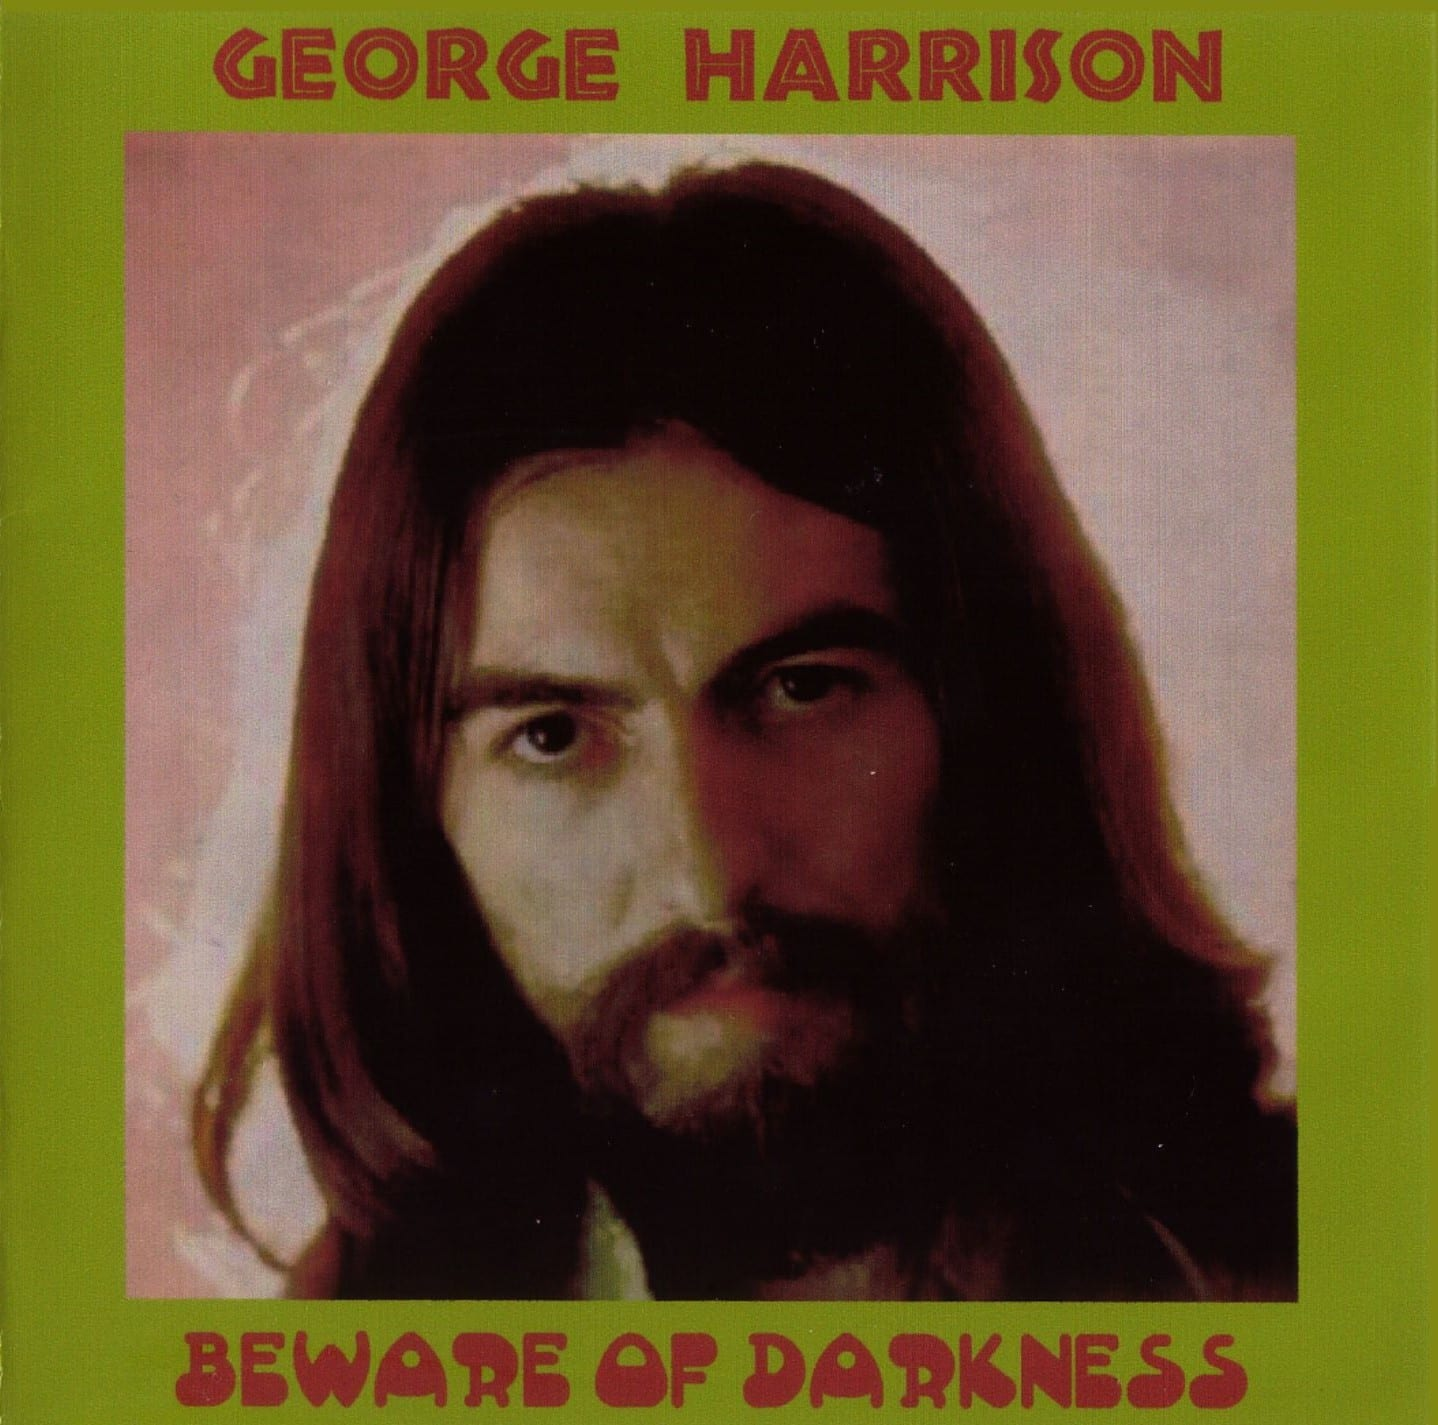 George Harrison ‎- Love Ballads (2002) CD 9